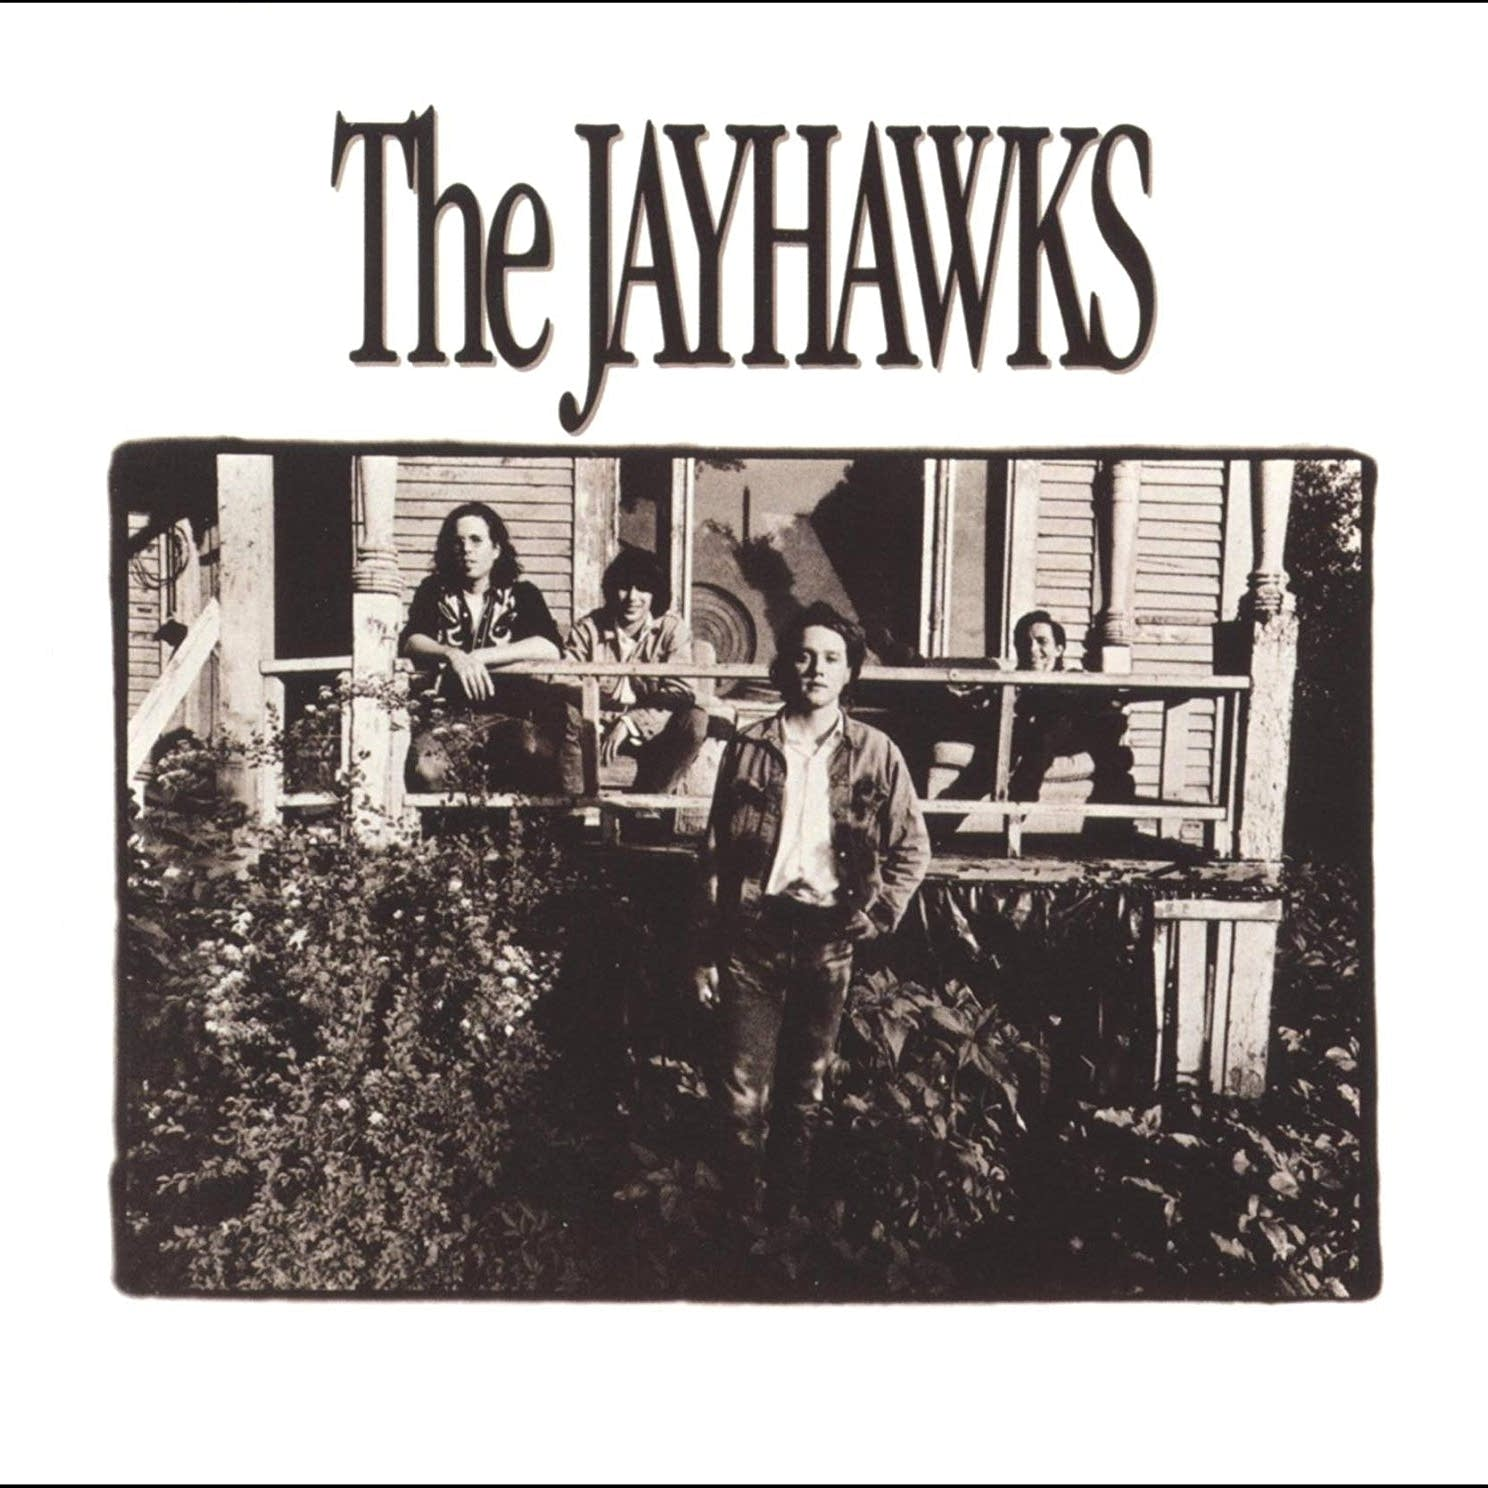 Norm Rogers appears with the Jayhawks on their debut album cover.